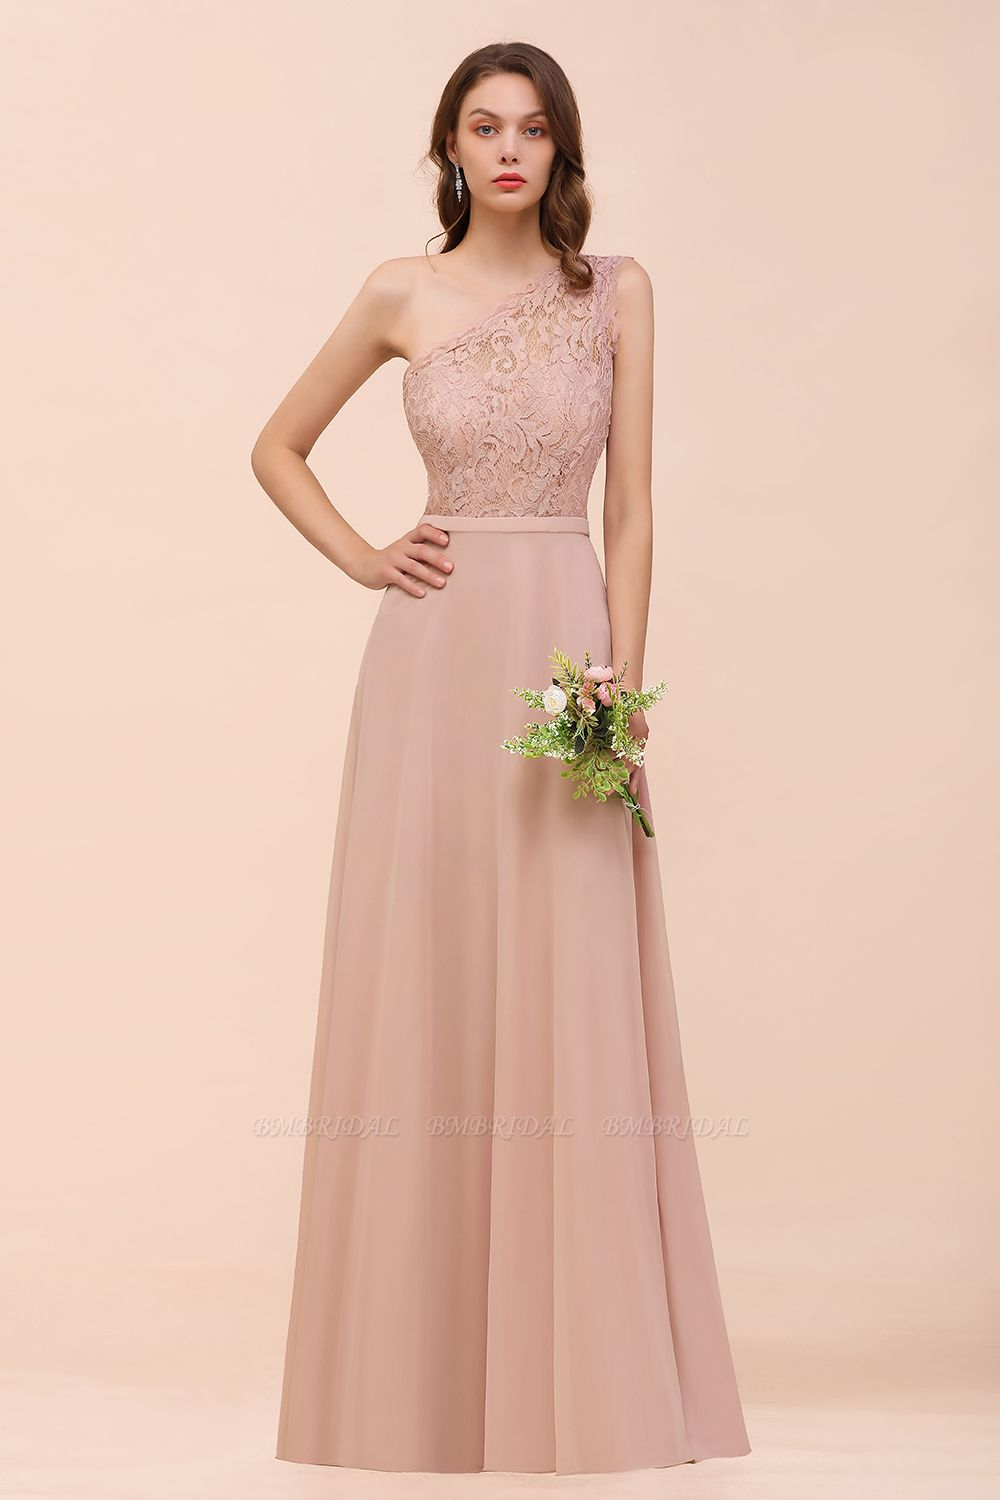 New Arrival Dusty Rose One Shoulder Lace Long Affordable